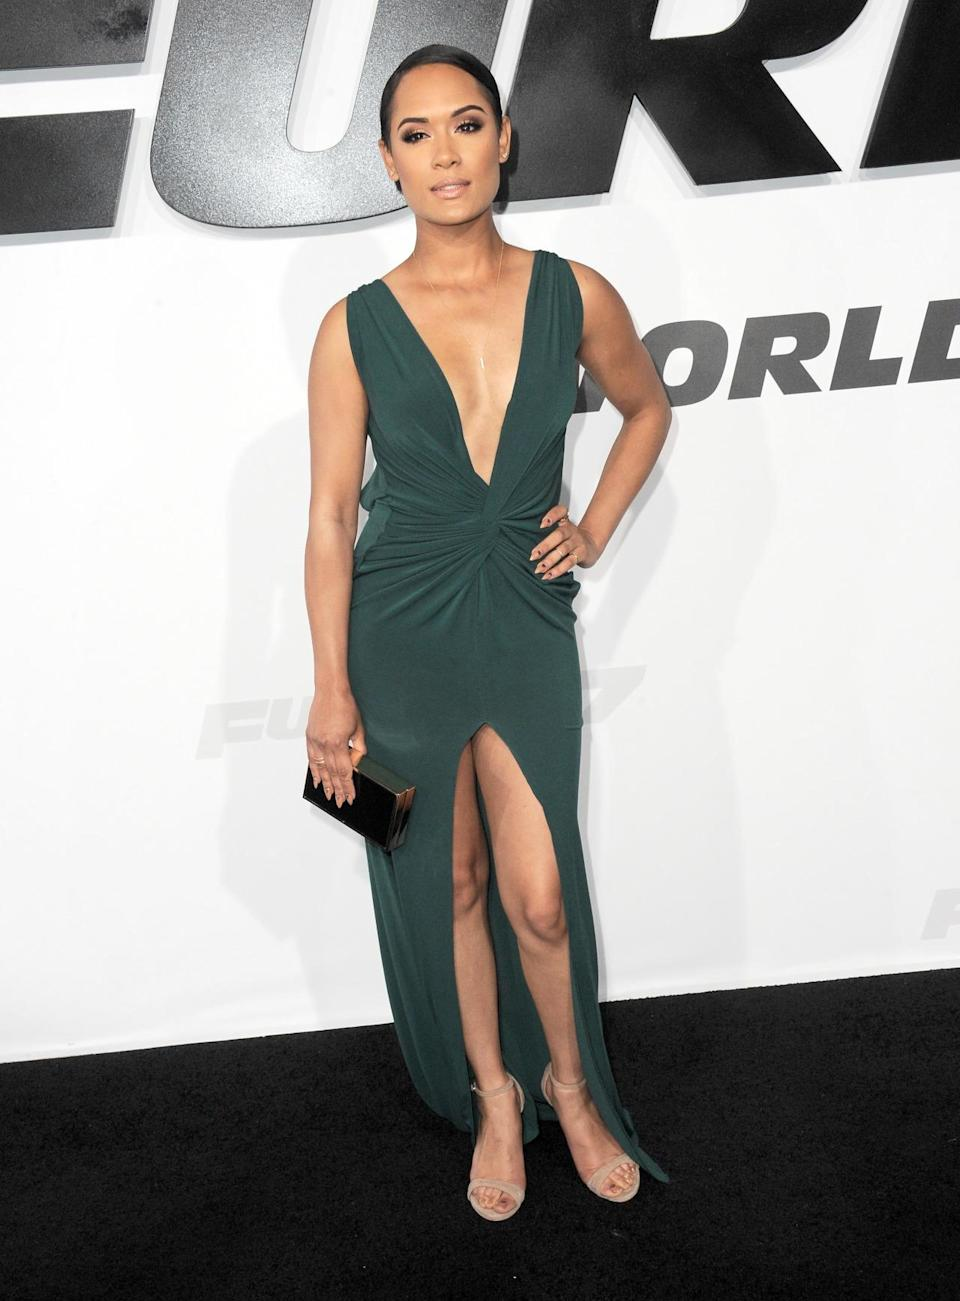 """The """"Empire"""" actress showed off her dangerous side in a revealing green gown. The plunging neckline and very high front slit are wardrobe malfunctions waiting to happen."""